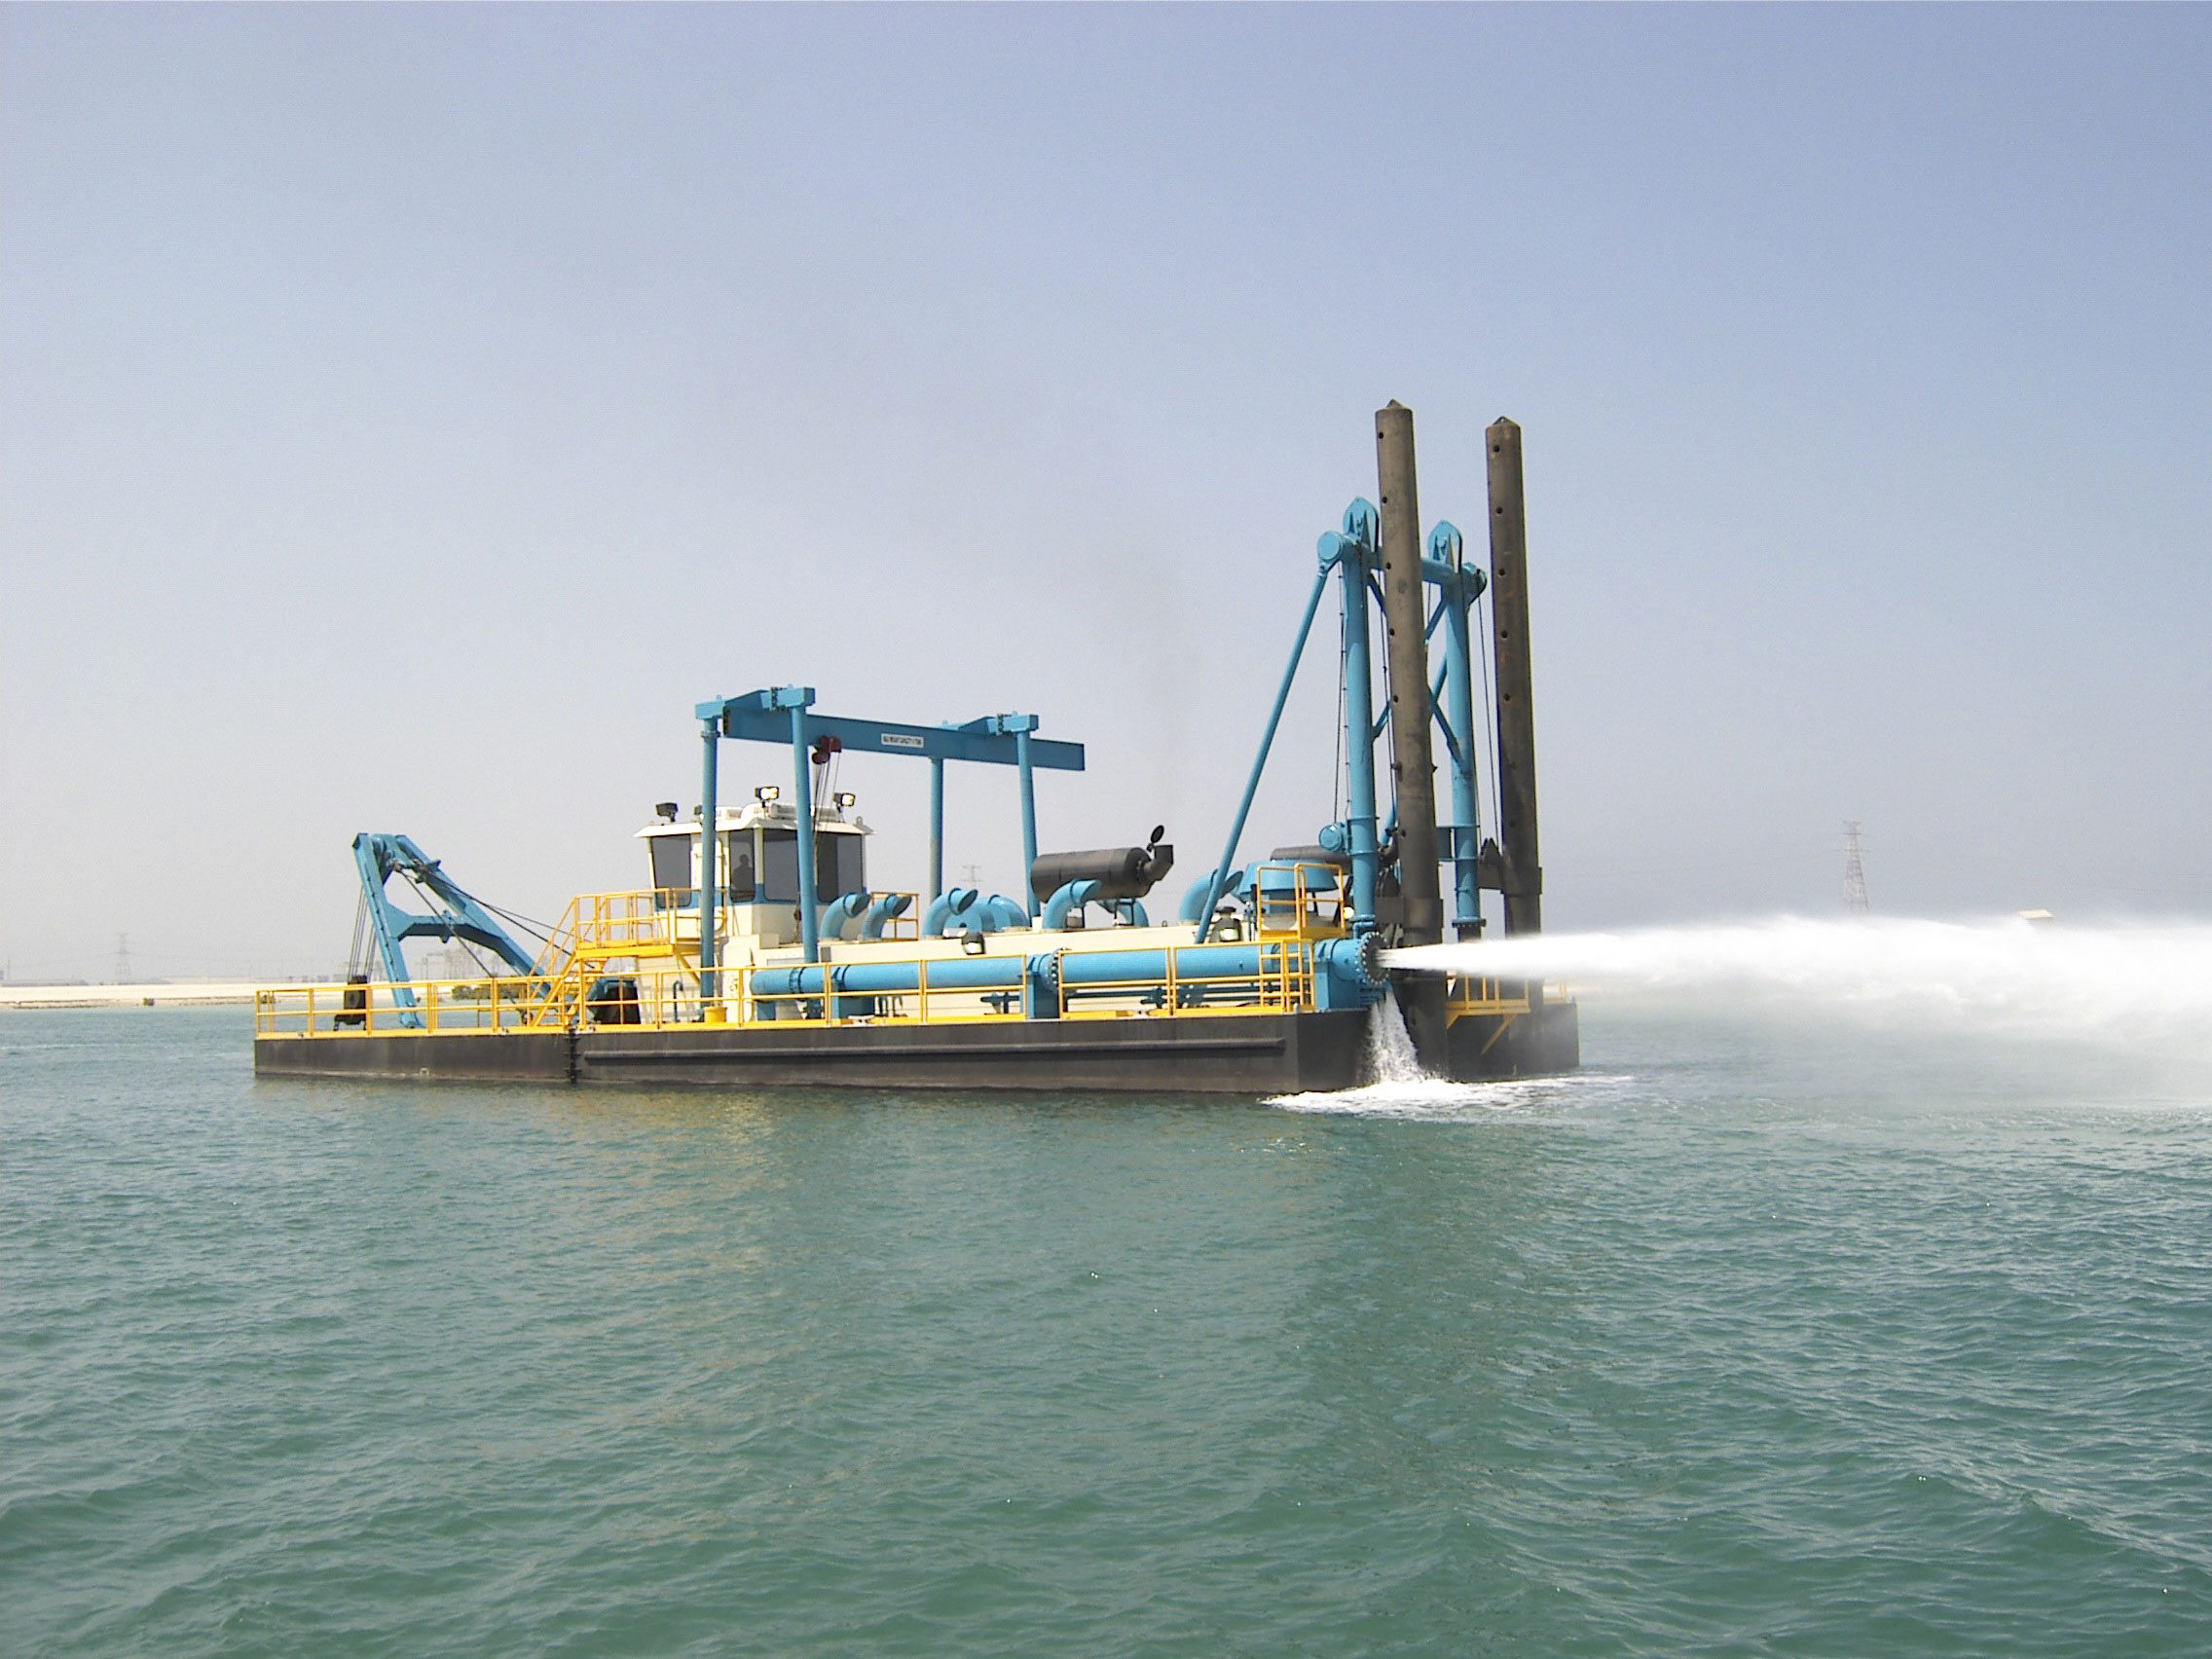 Portable Suction Dredge : Shark dredges by dsc dredge aggregates and mining today